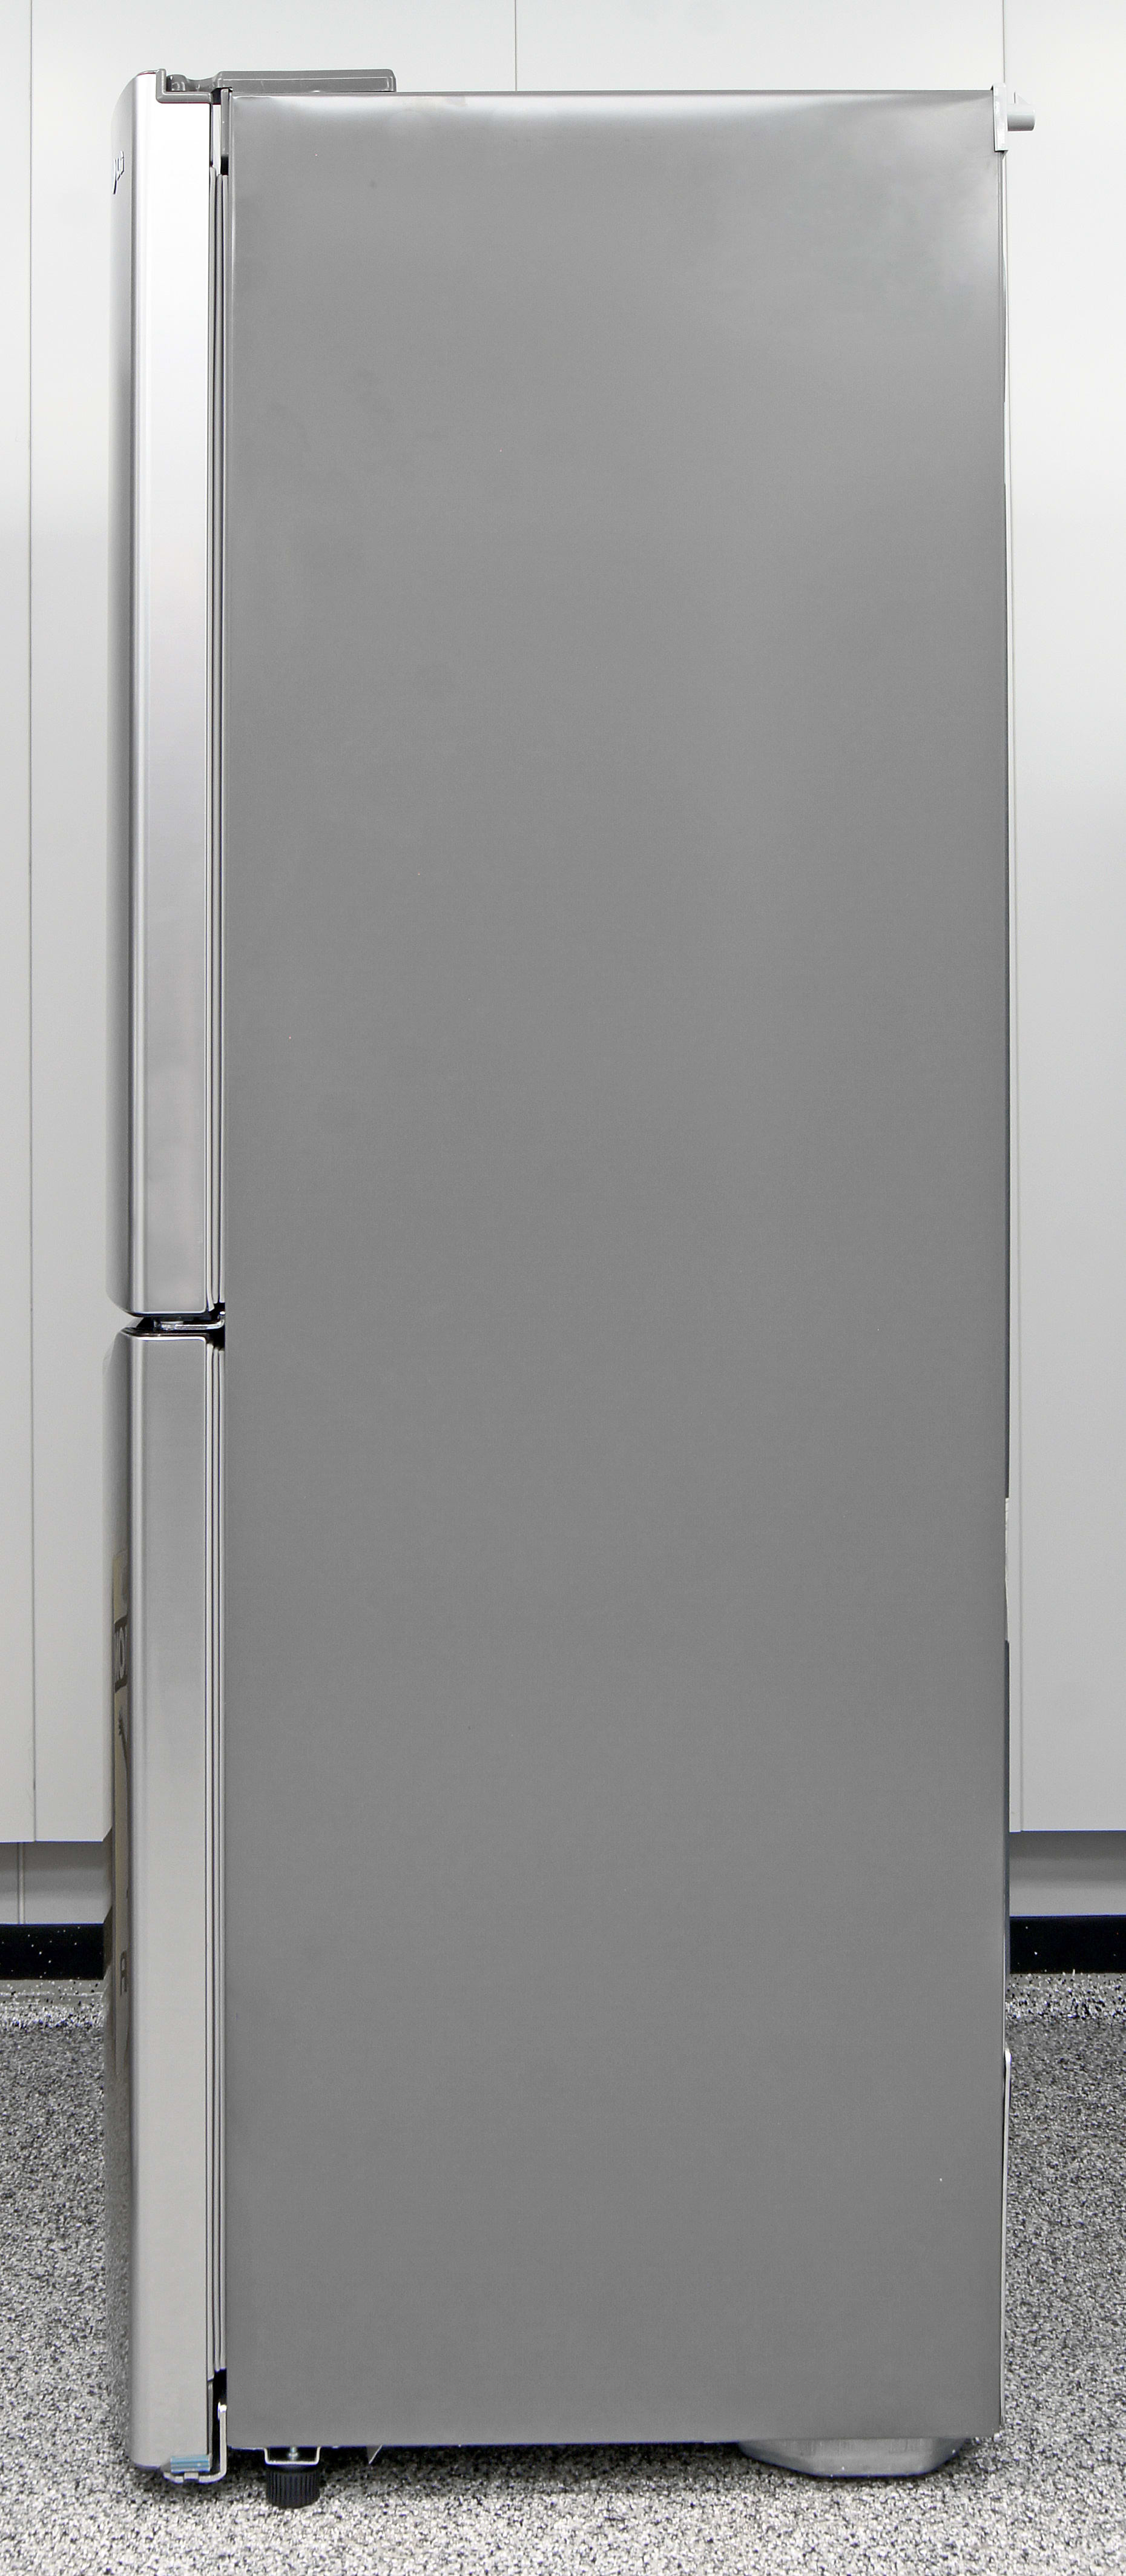 The LG LBN10551PV's mooth gray sides complement the stainless front.